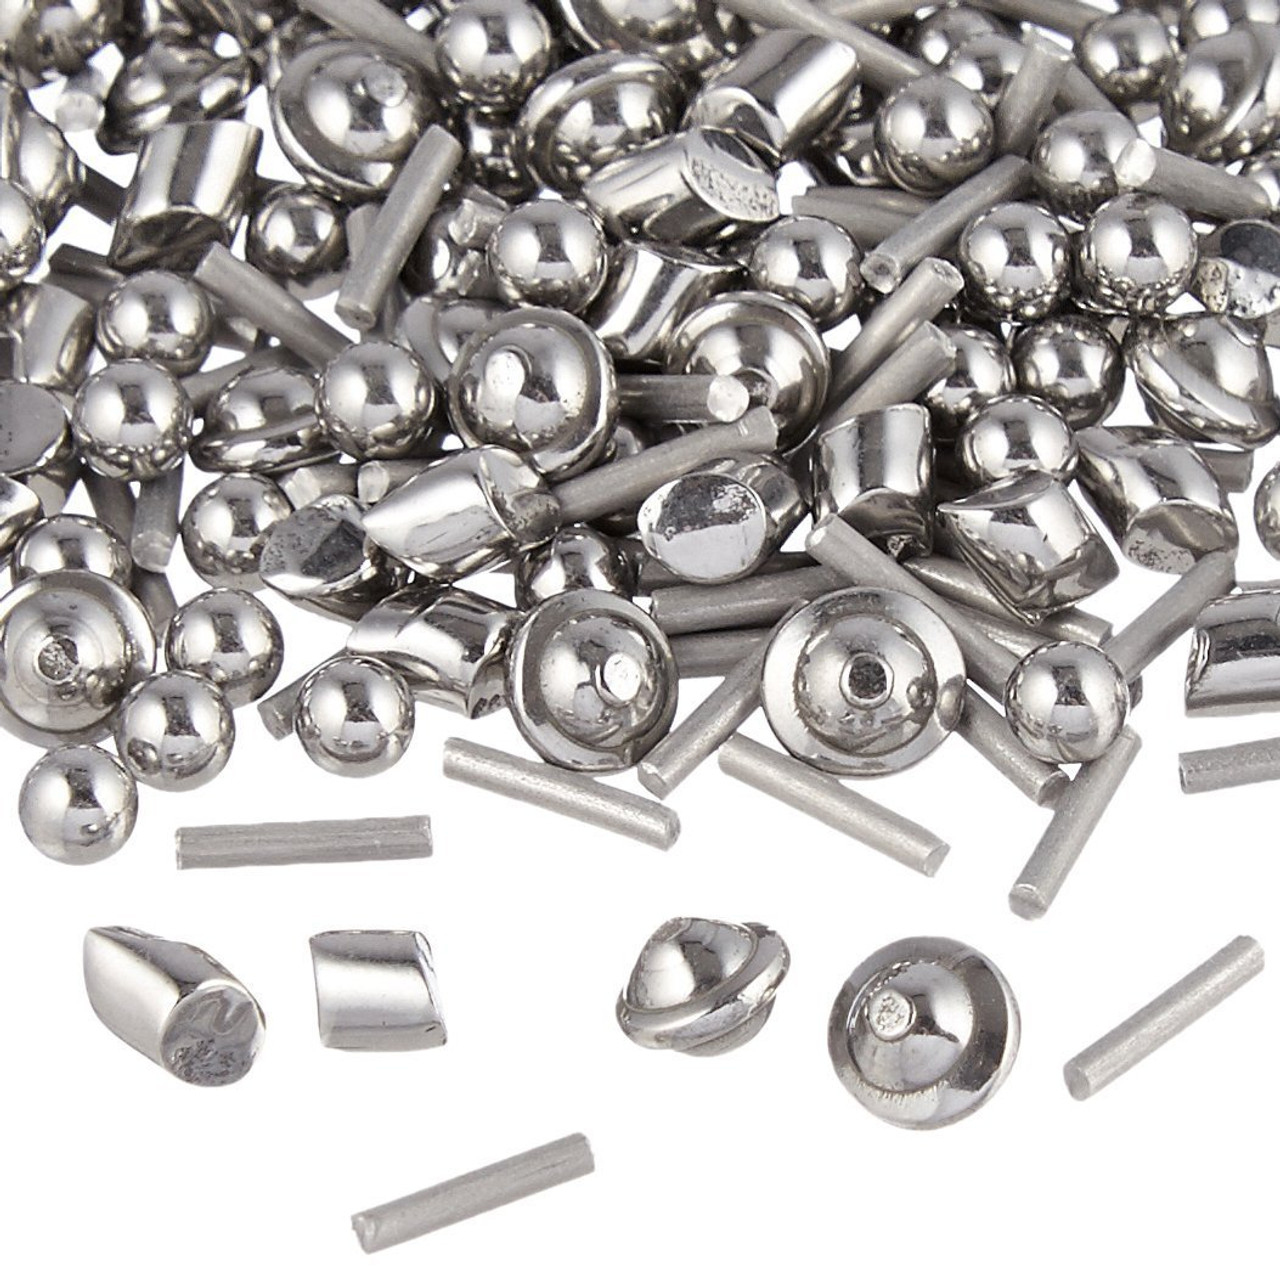 1 LB Stainless Steel Tumbling Media Shot Jewelers Mix 3 Shapes Tumbler Finishing